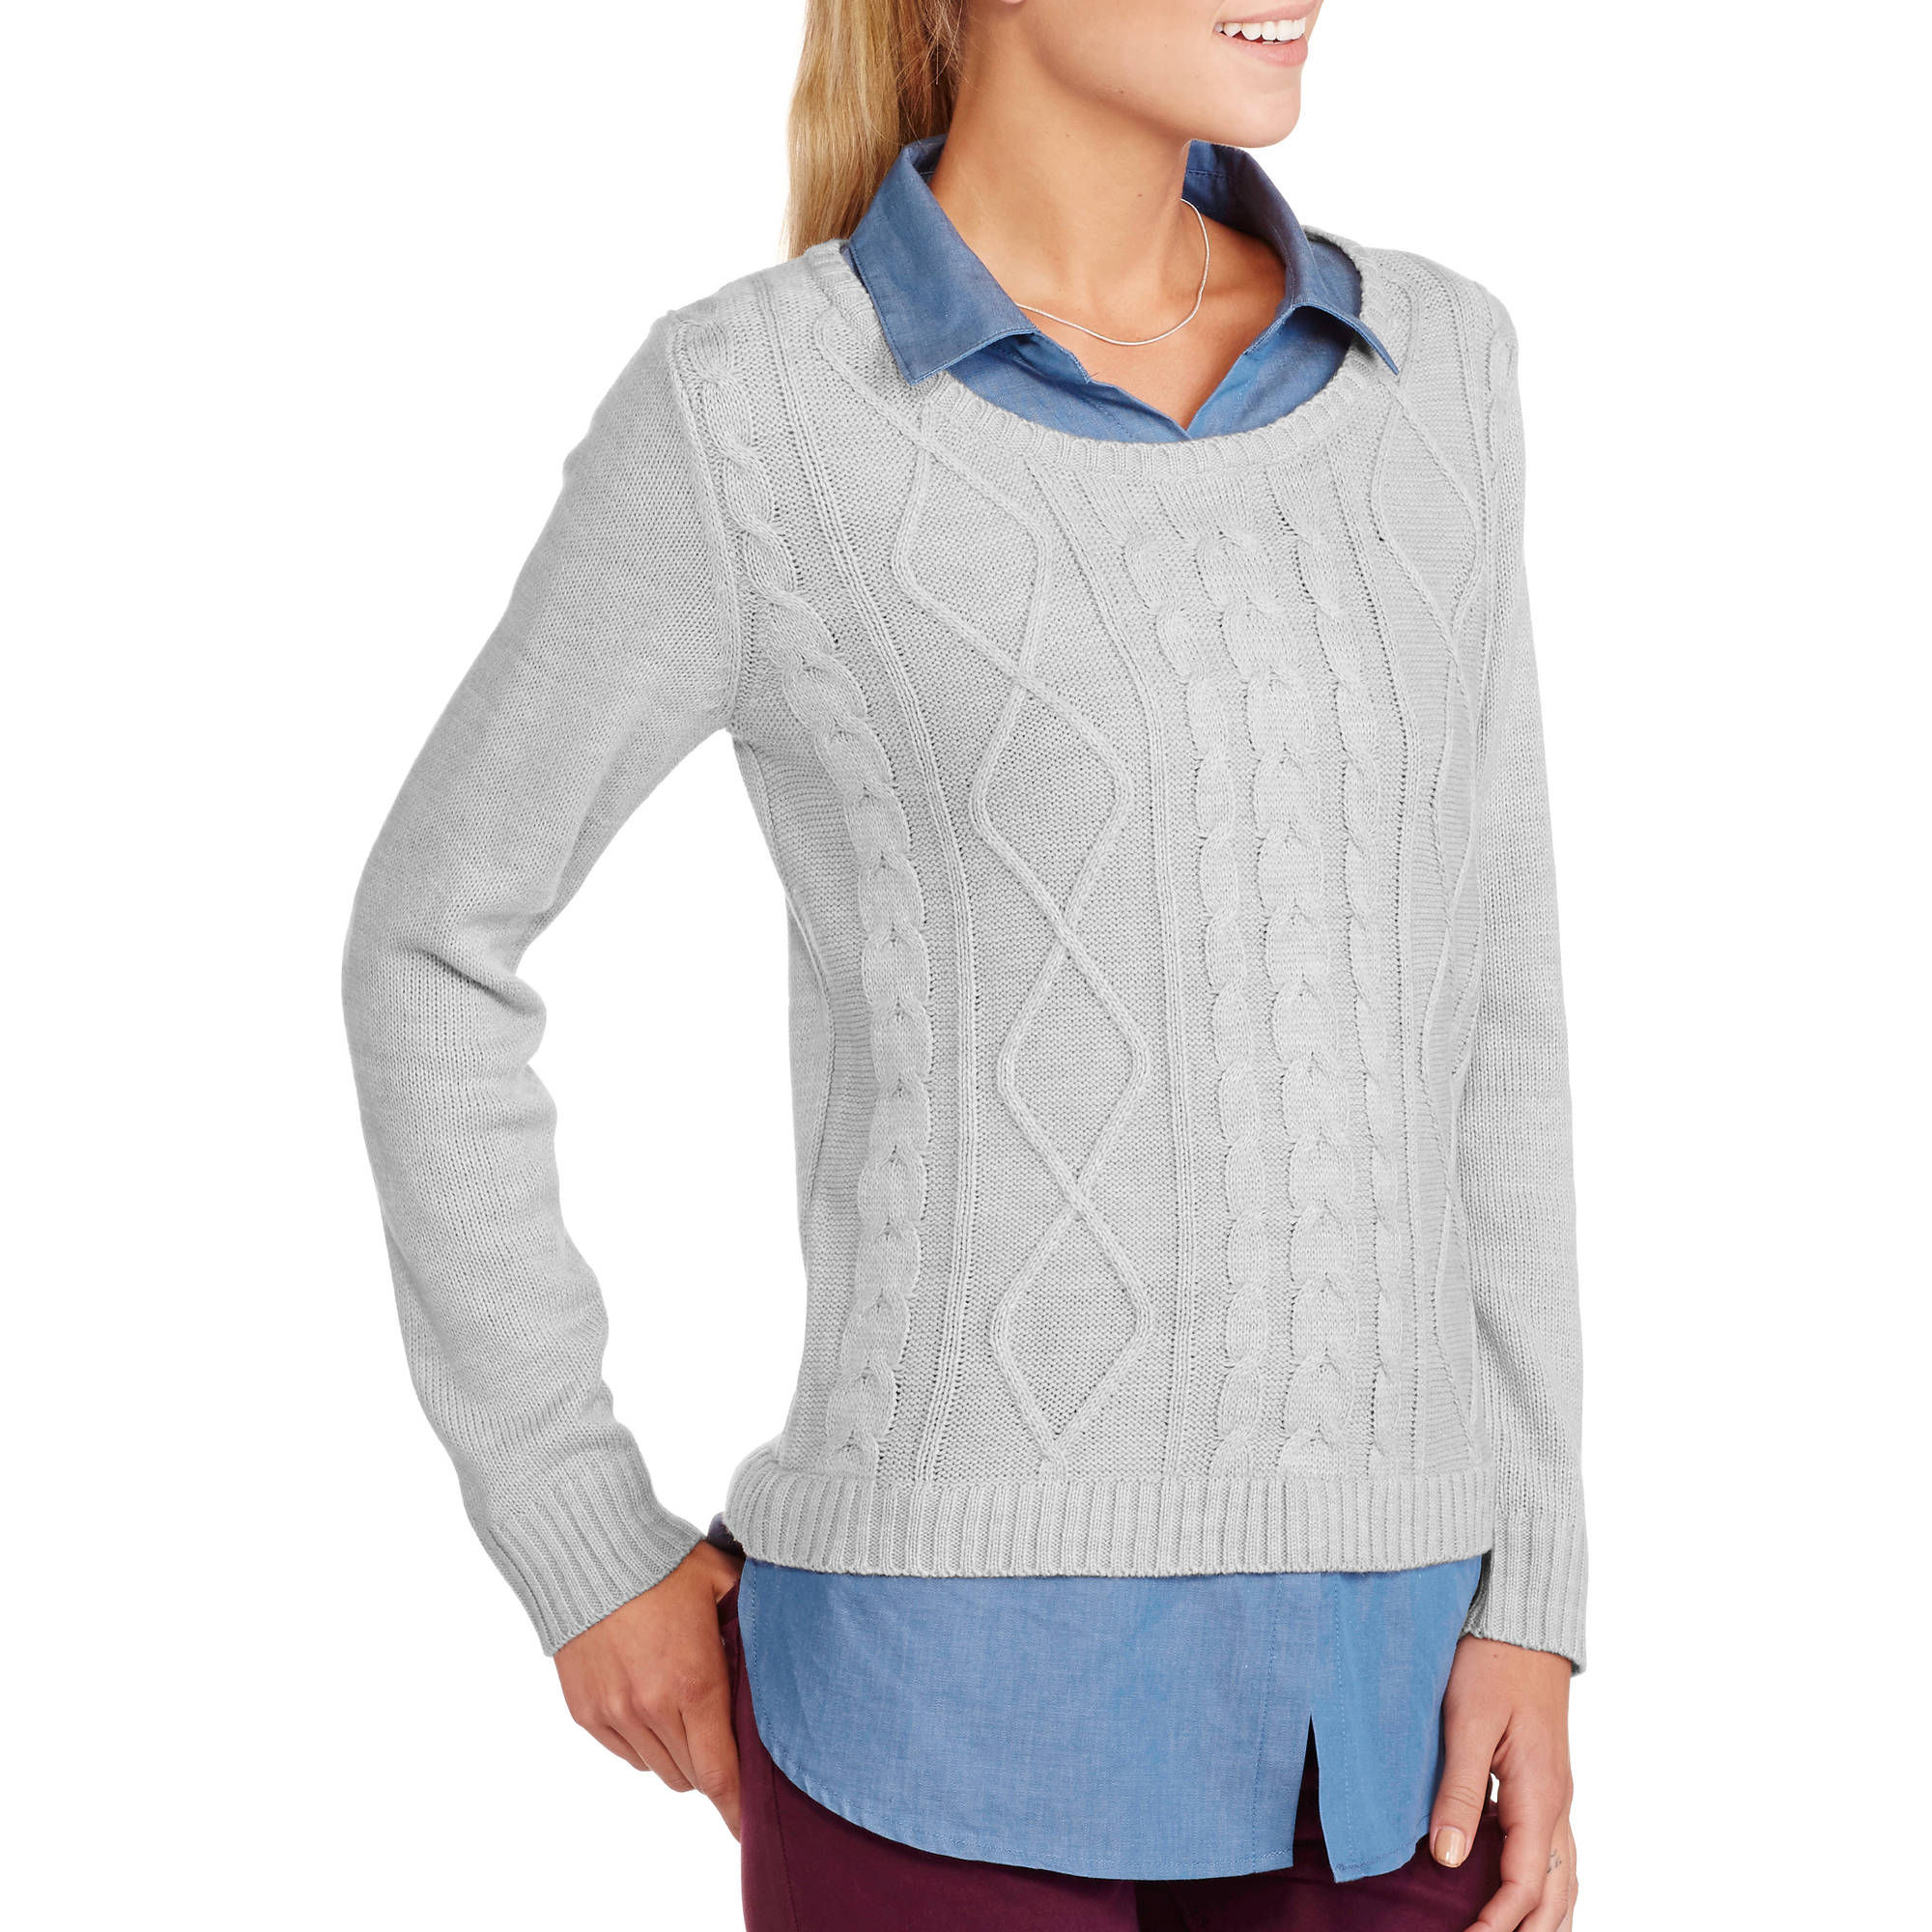 Women's Scoop Neck 2-Fer Fashion Sweater